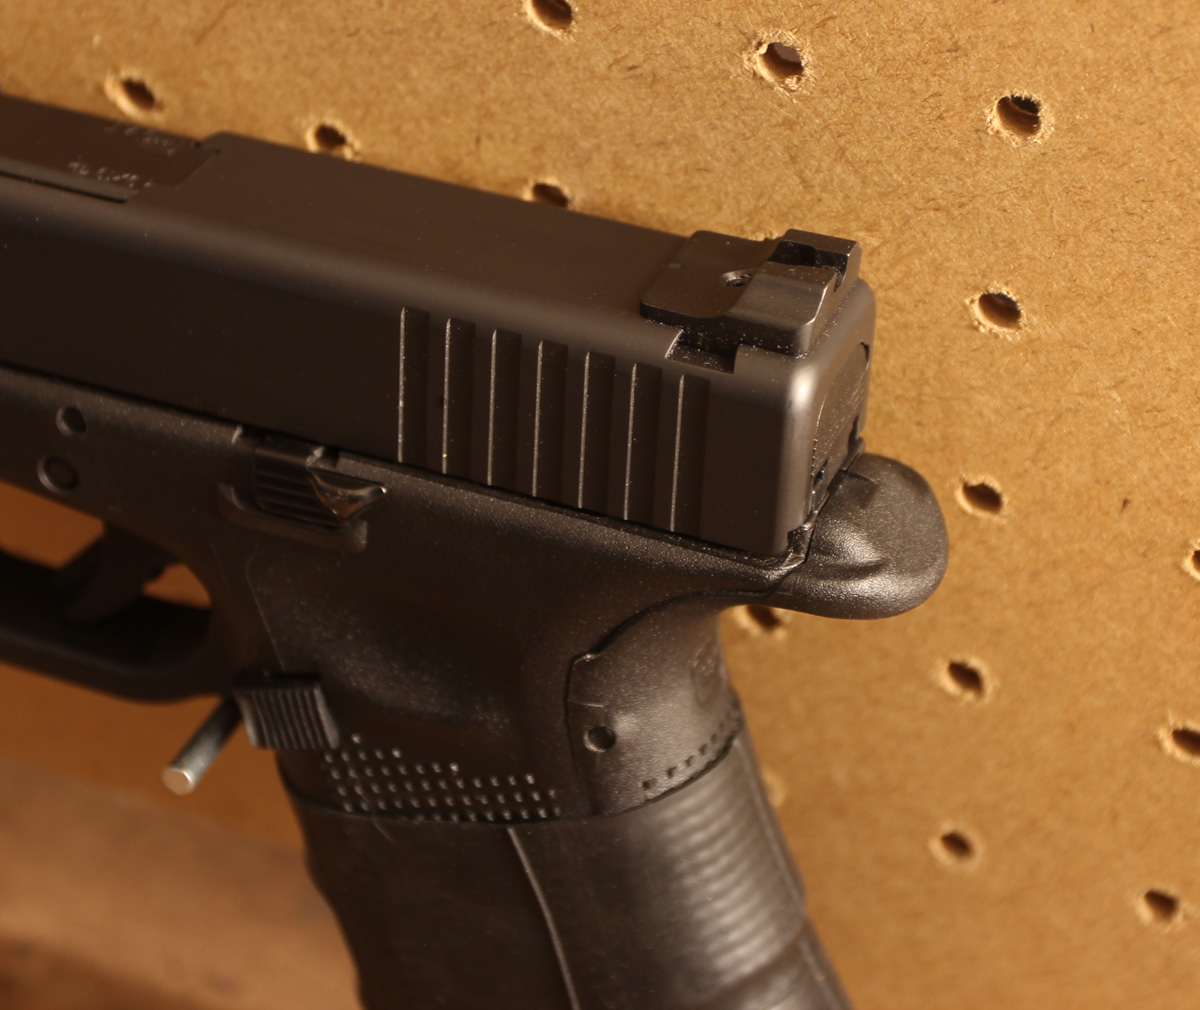 Mod Your Glock for Competition for Under $100 - GunsAmerica